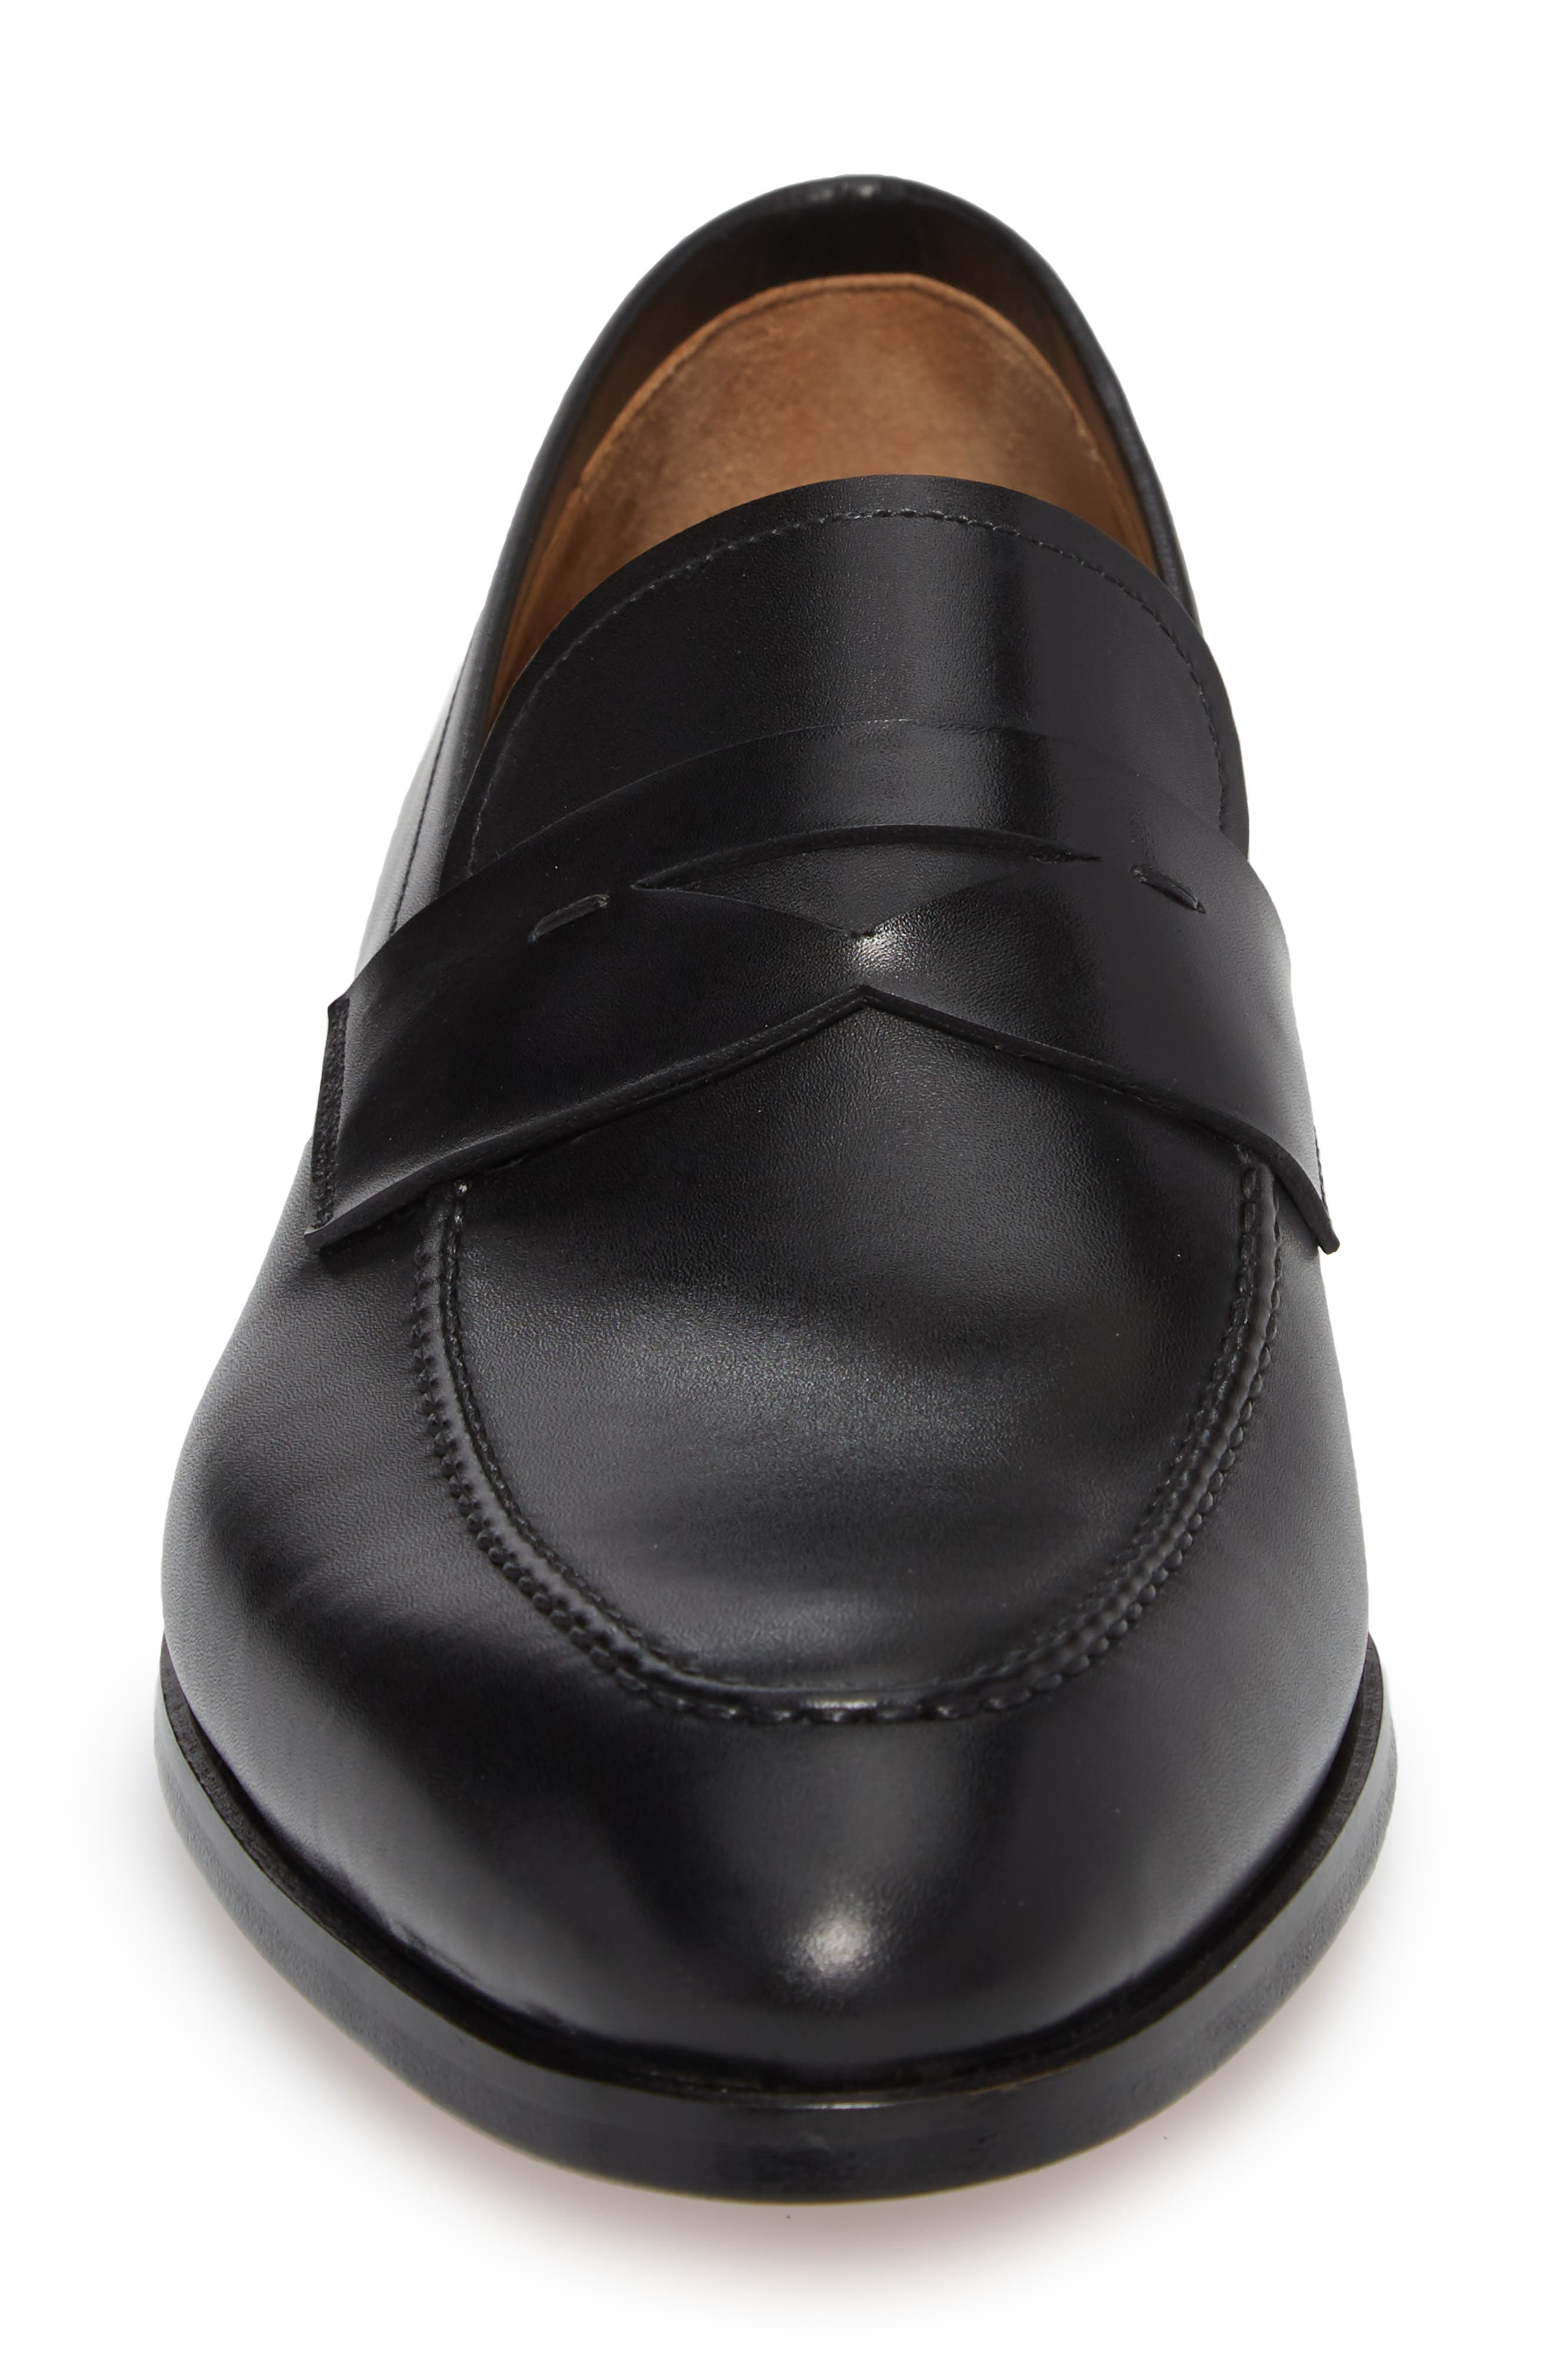 Rolly Apron Toe Penny Loafer,                             Alternate thumbnail 4, color,                             BLACK LEATHER